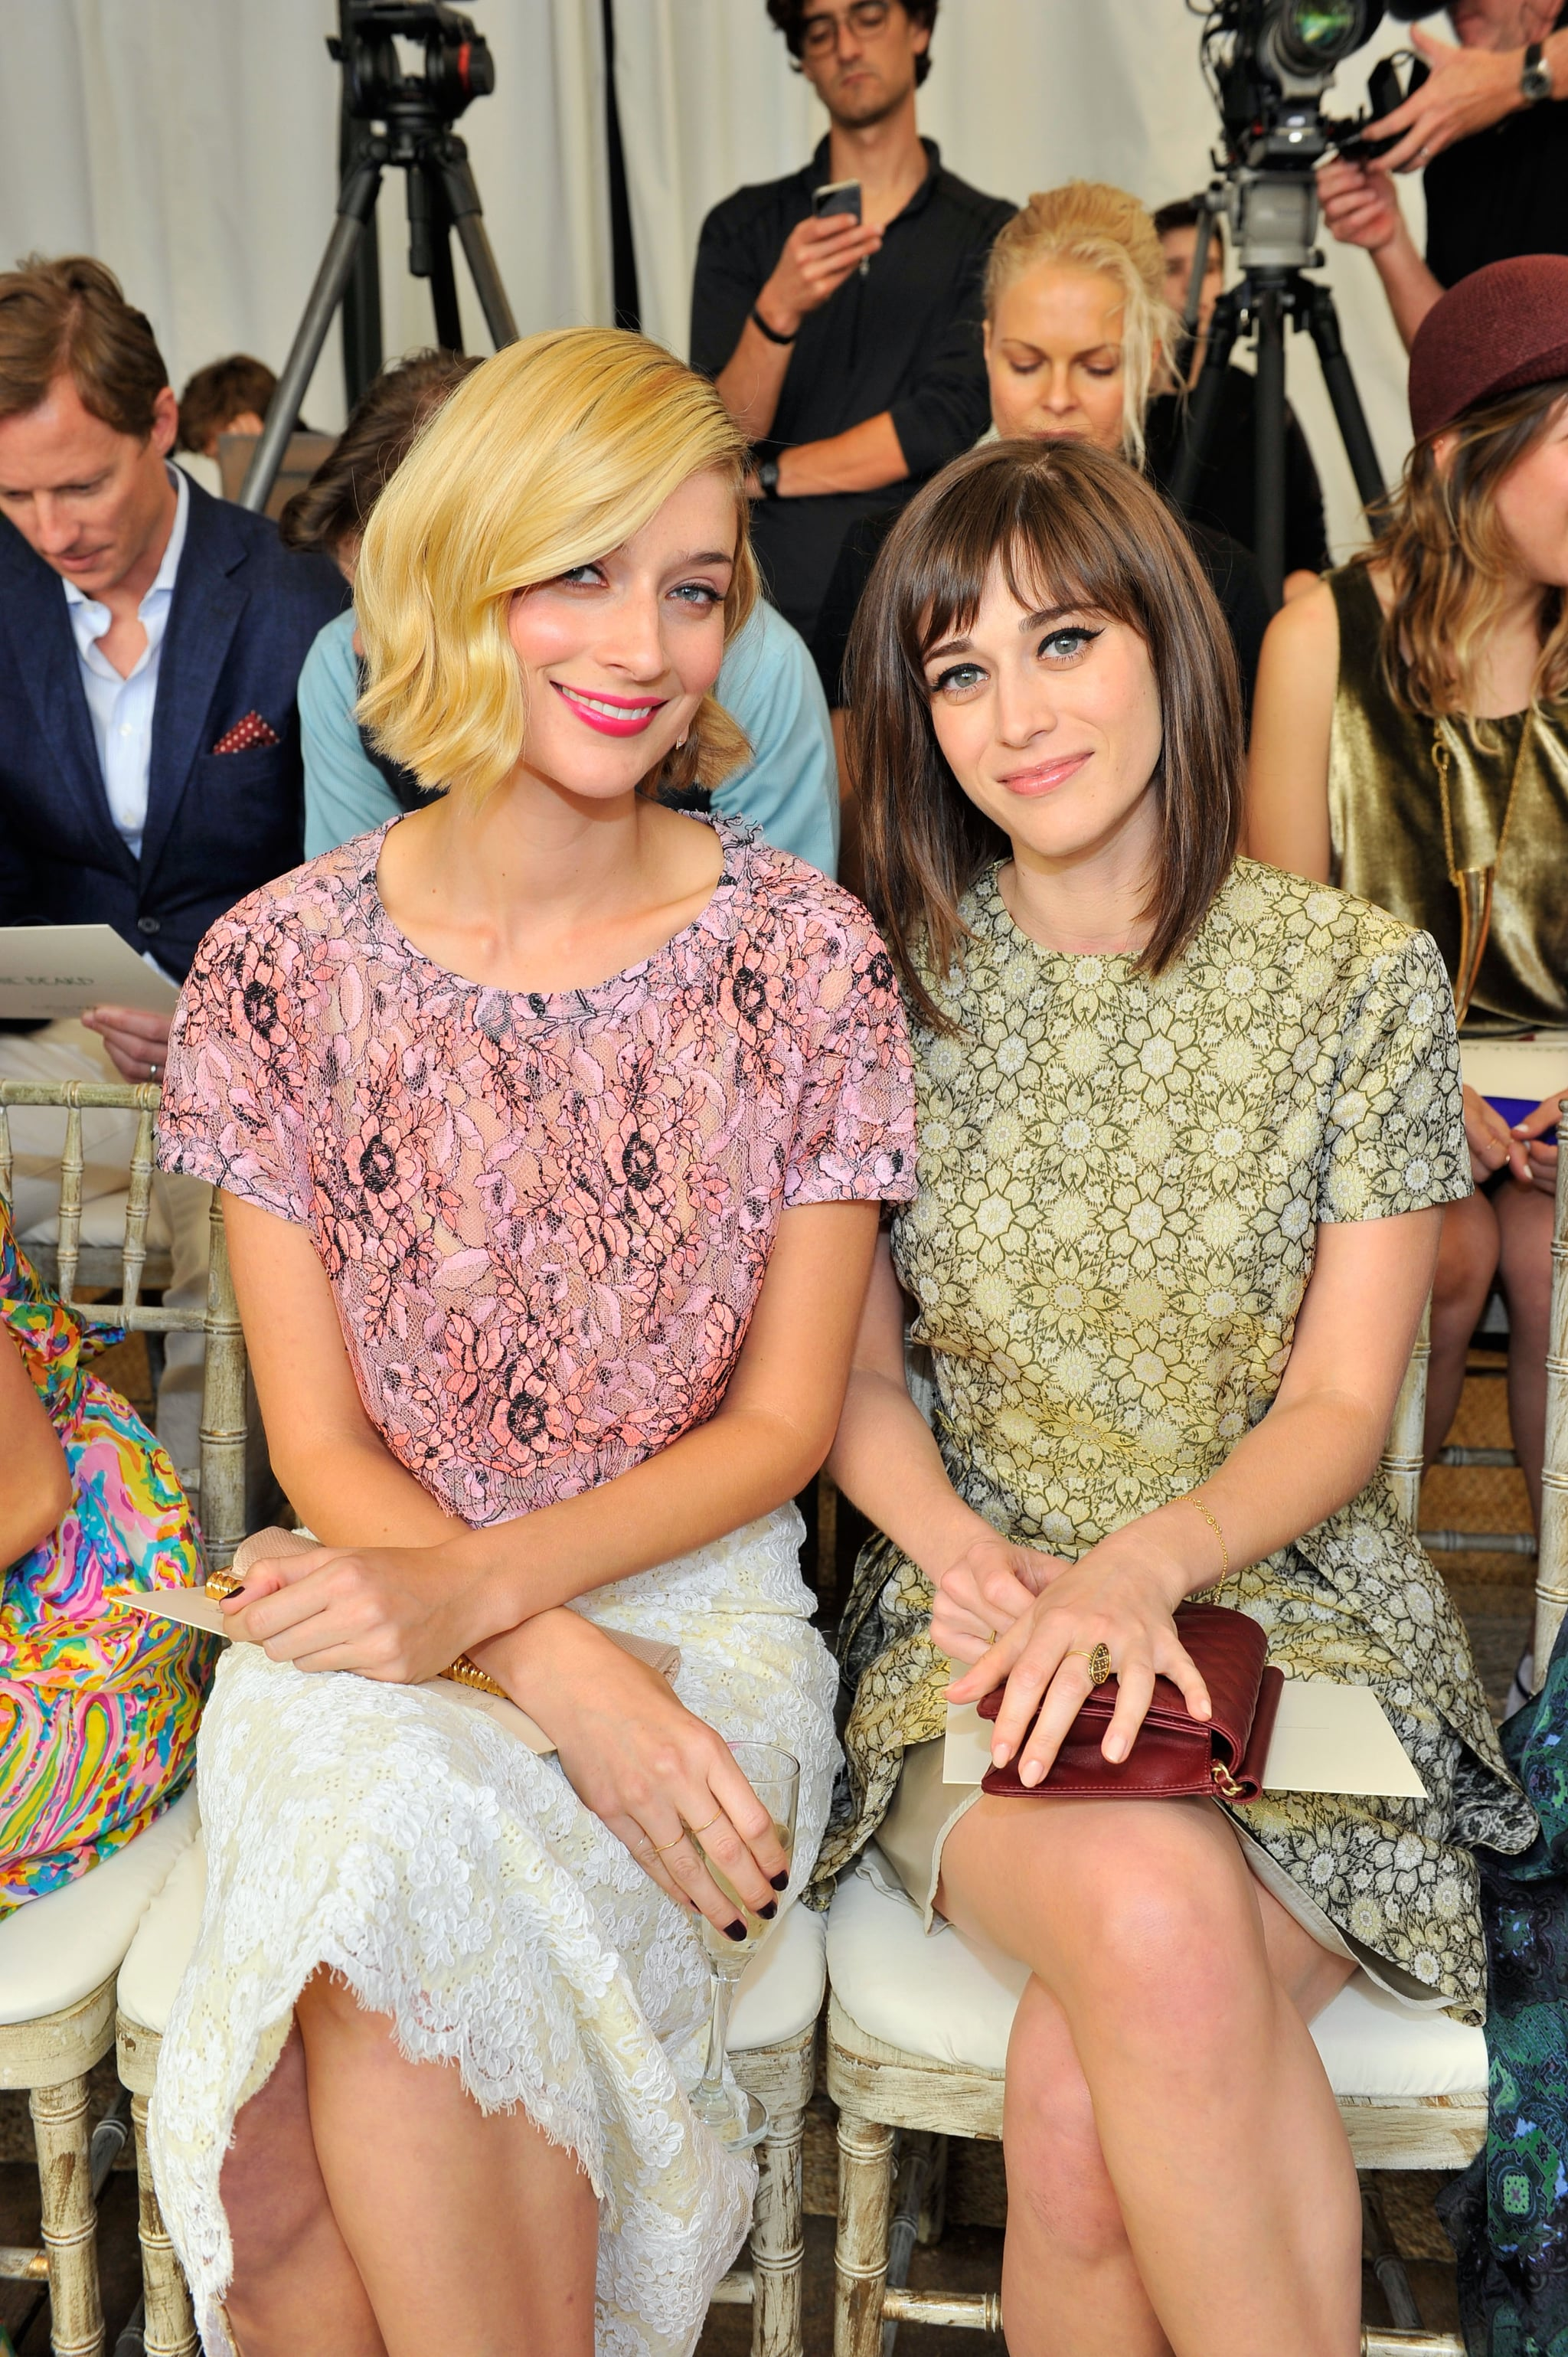 Caitlin fitzgerald and lizzy caplan masters of sex 2014 4